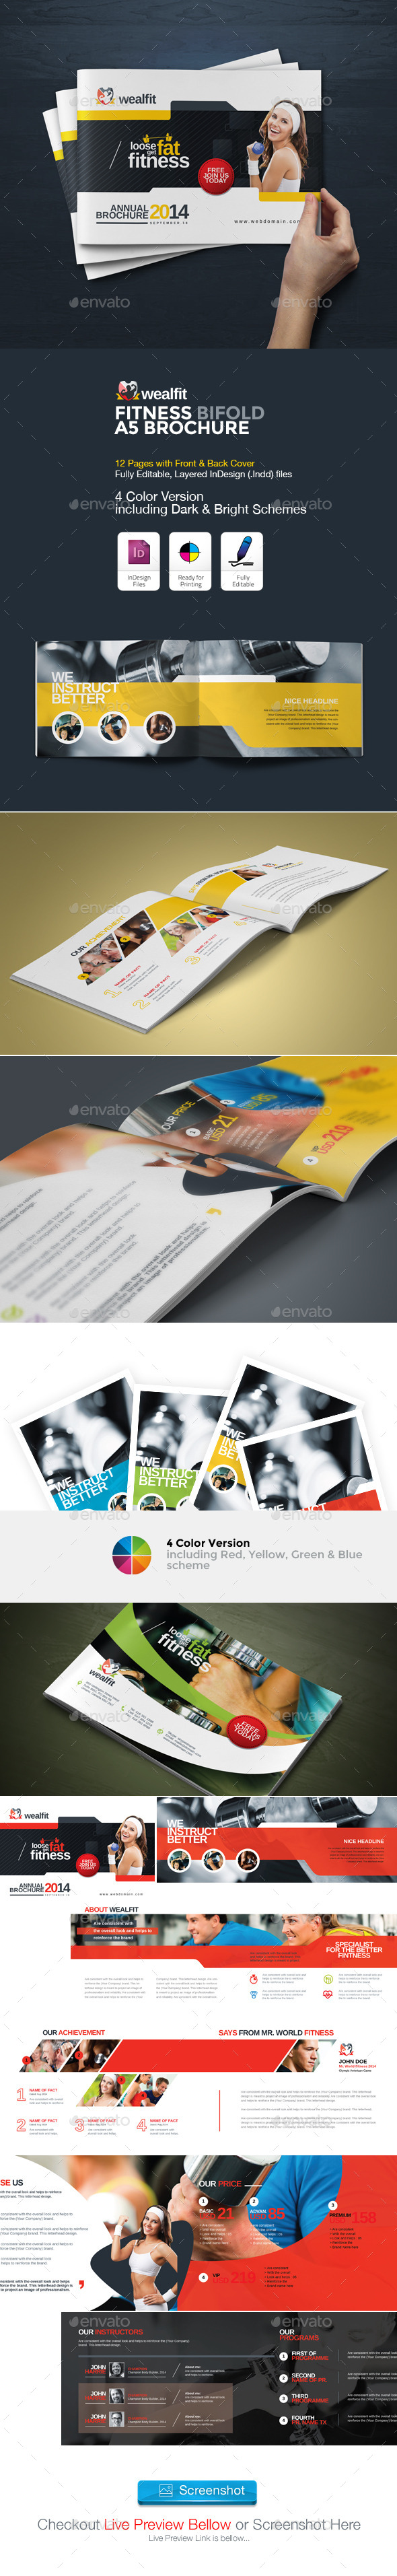 GraphicRiver WealFit Fitness Gym Bifold A5 Brochure 10282368